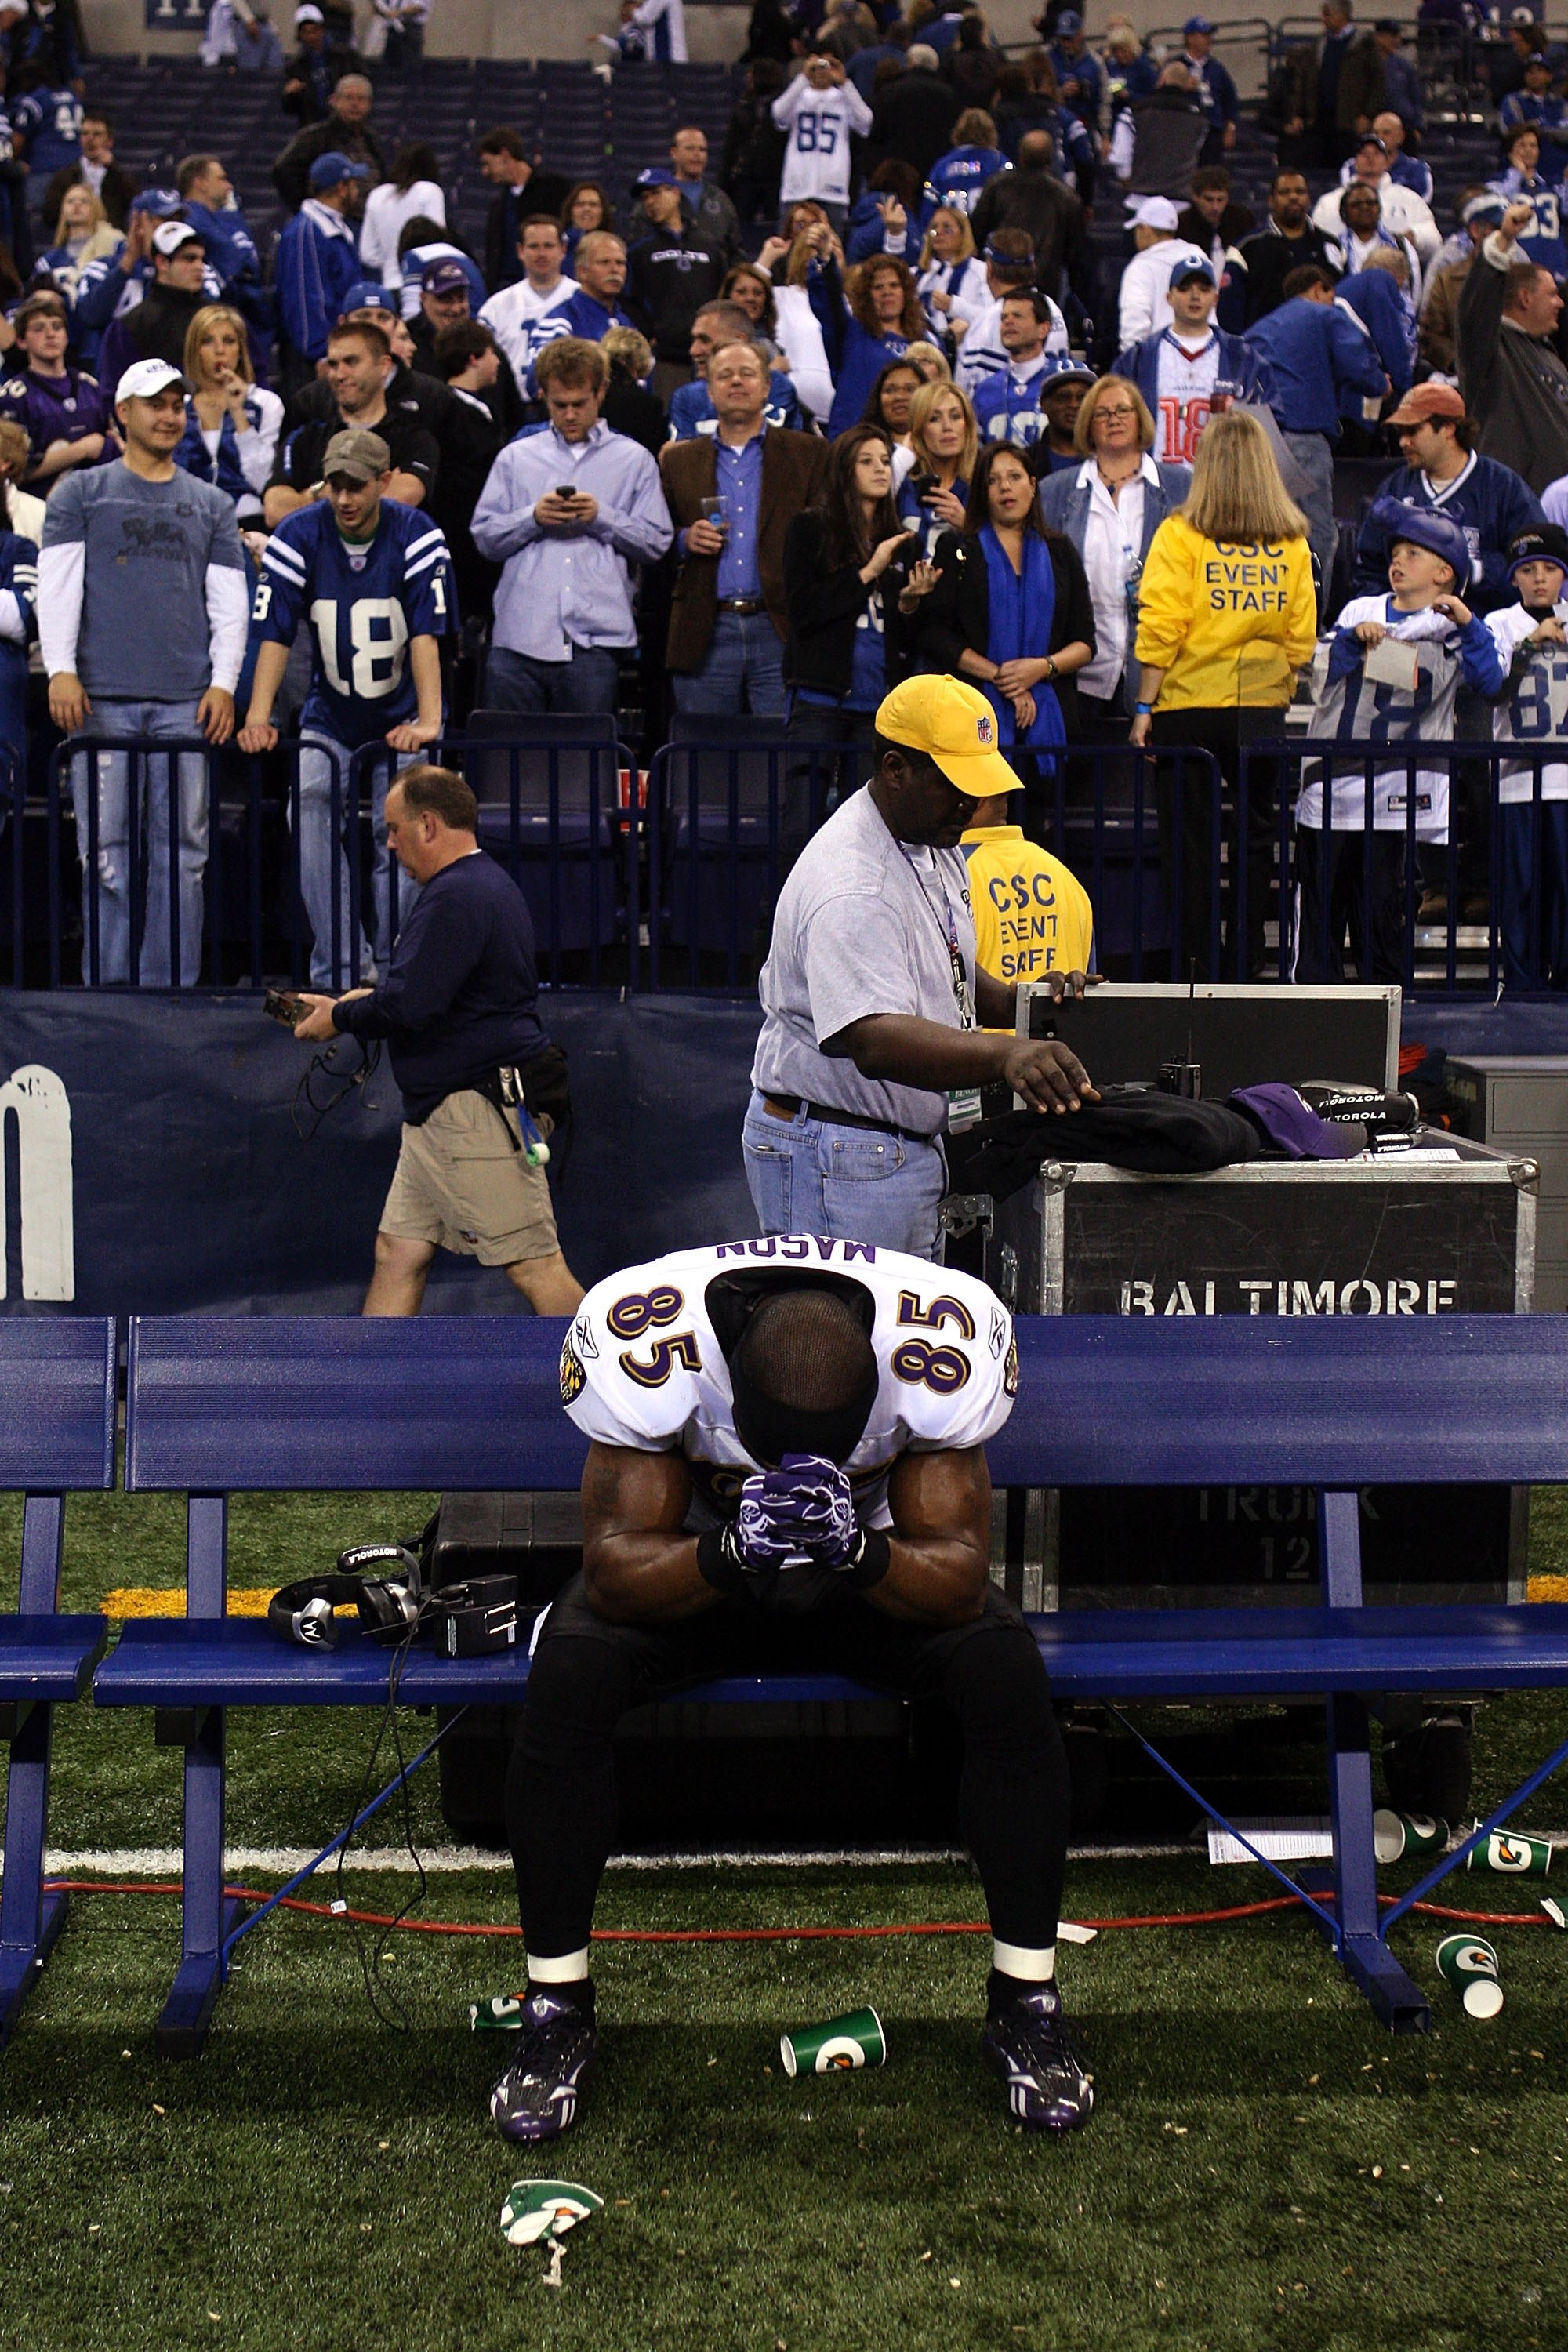 INDIANAPOLIS - JANUARY 16:  Derrick Mason #85 of the Baltimore Ravens sits on the bench after losing to the Indianapolis Colts 20-3 in the AFC Divisional Playoff Game at Lucas Oli Stadium on January 16, 2010 in Indianapolis, Indiana.  (Photo by Jonathan D